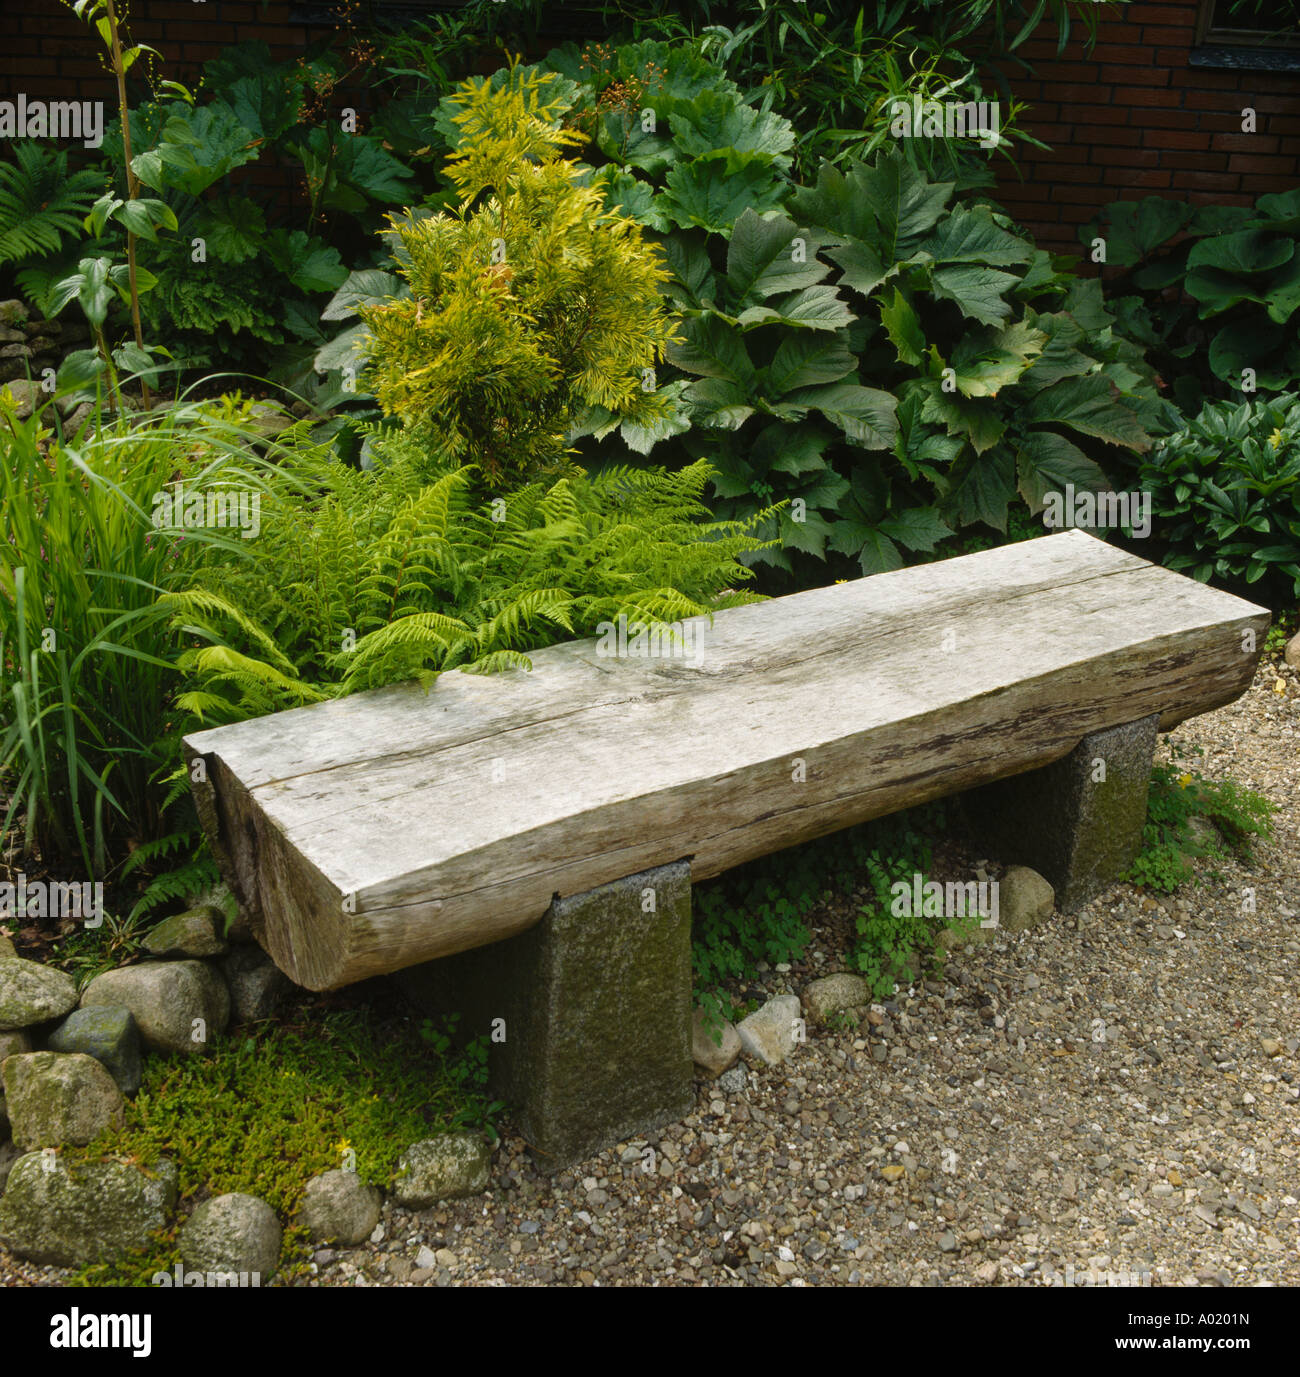 Swell Recycled Wooden Garden Bench In Front Of Ferns And Gunnera Machost Co Dining Chair Design Ideas Machostcouk